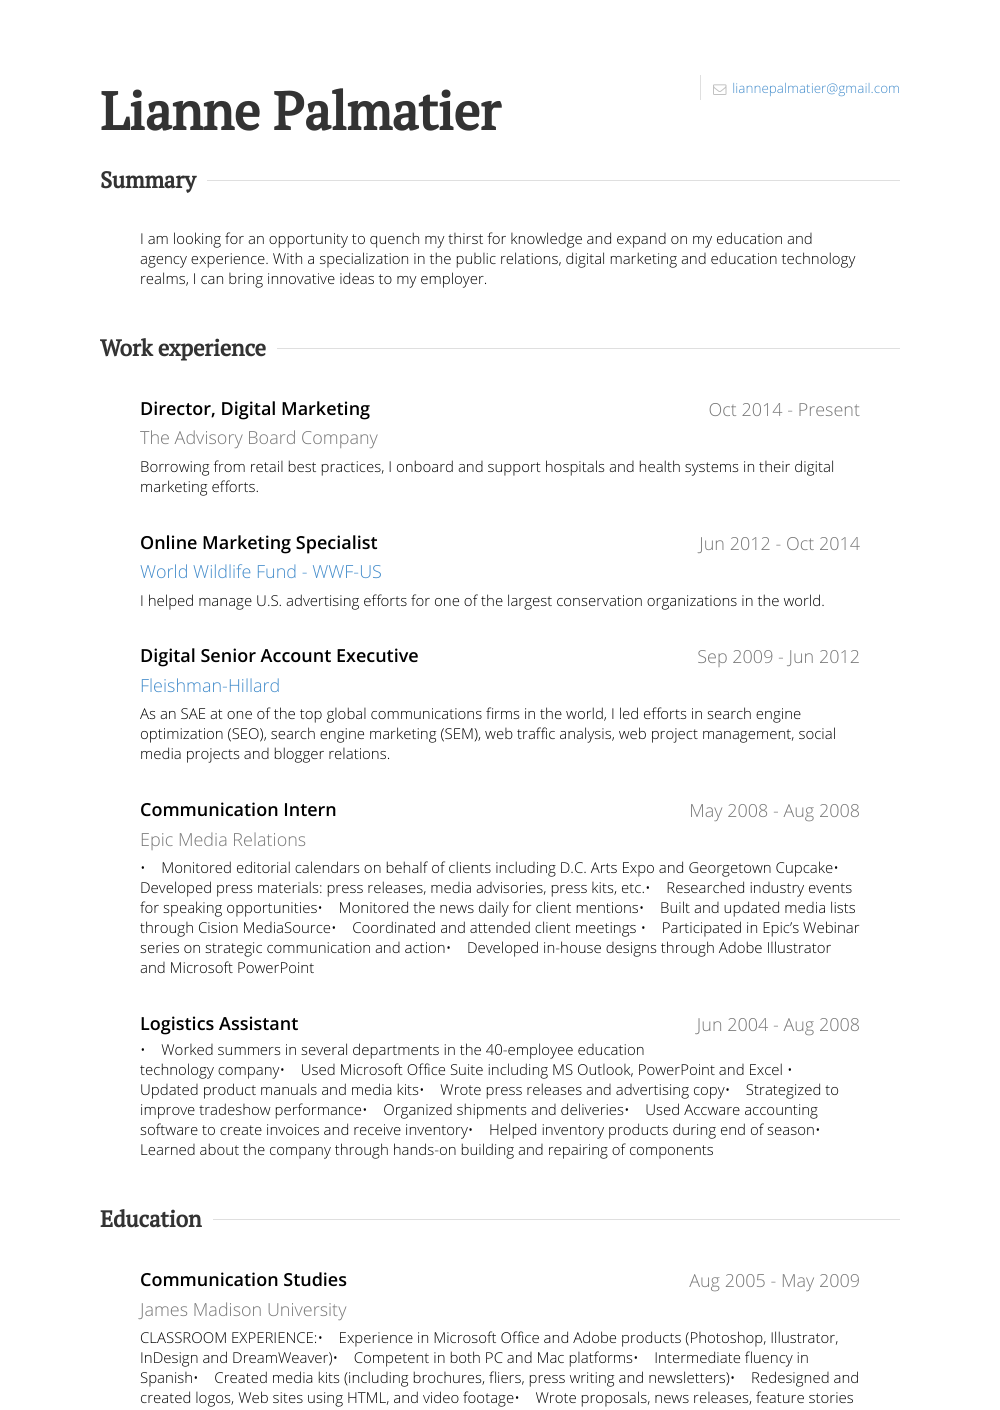 Online Marketing Specialist Resume Samples Templates Visualcv